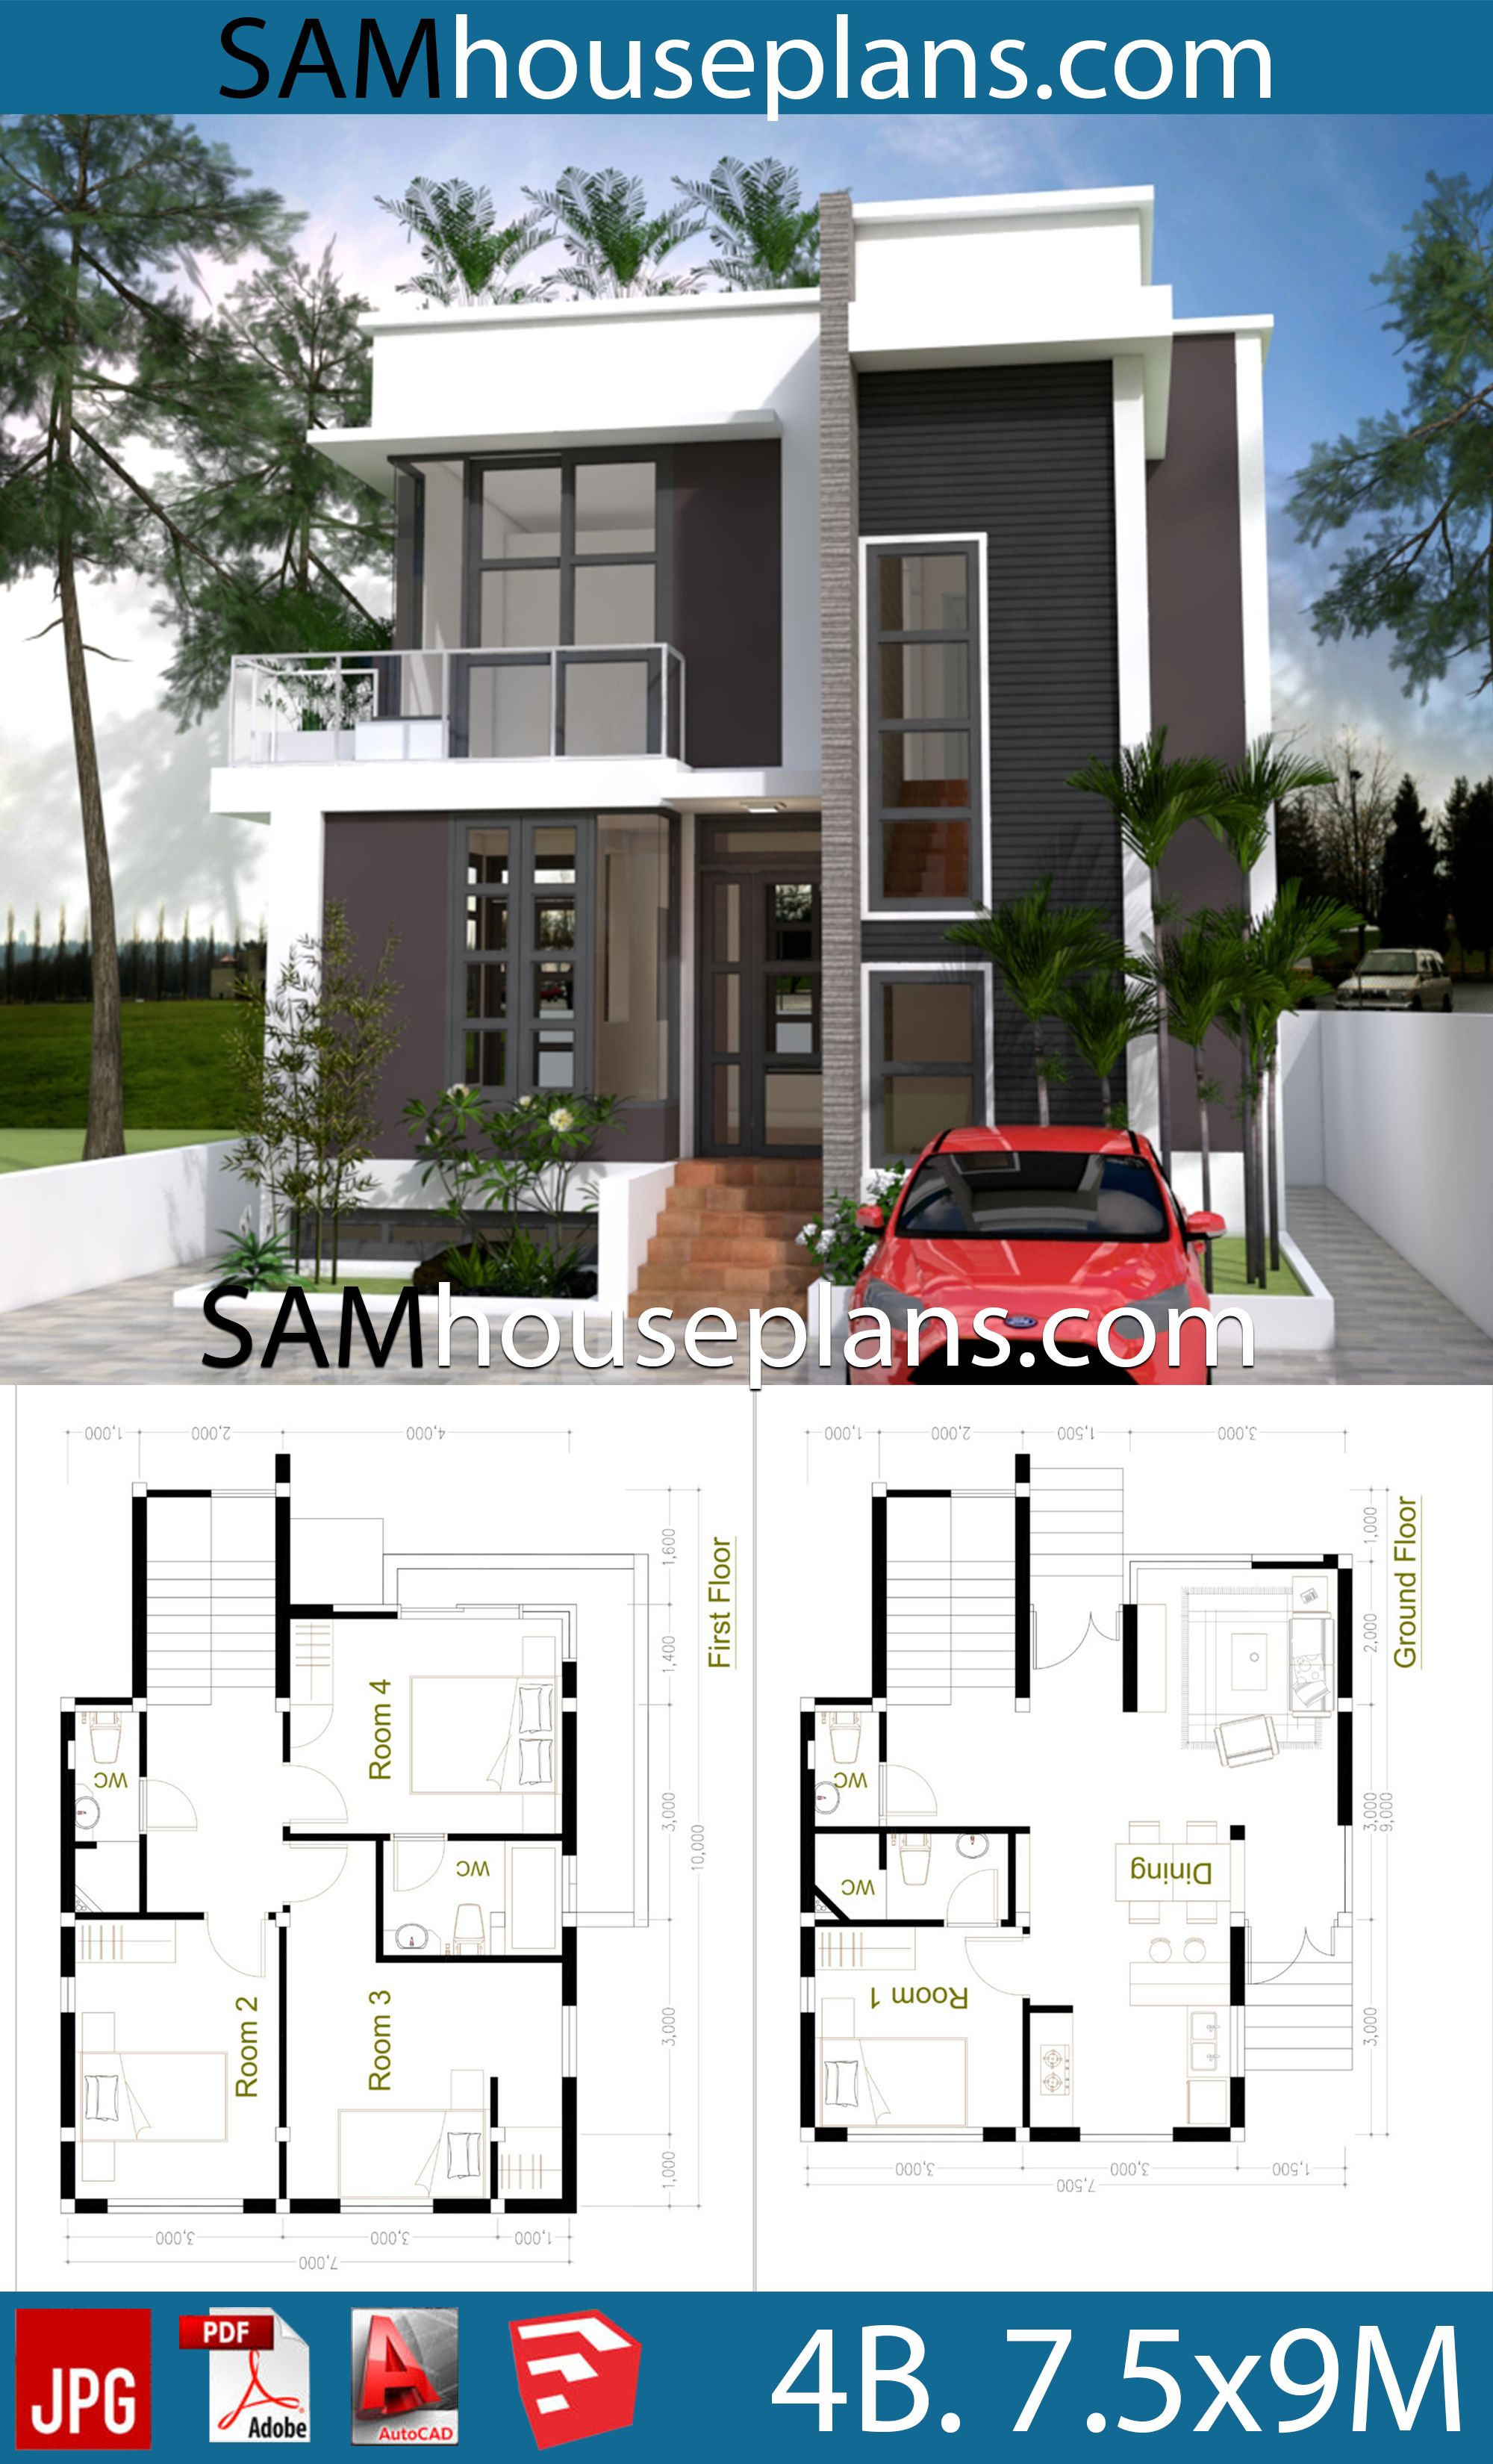 Pin By Top House Plans On My Saves In 2021 Bungalow House Design Duplex House Design House Construction Plan